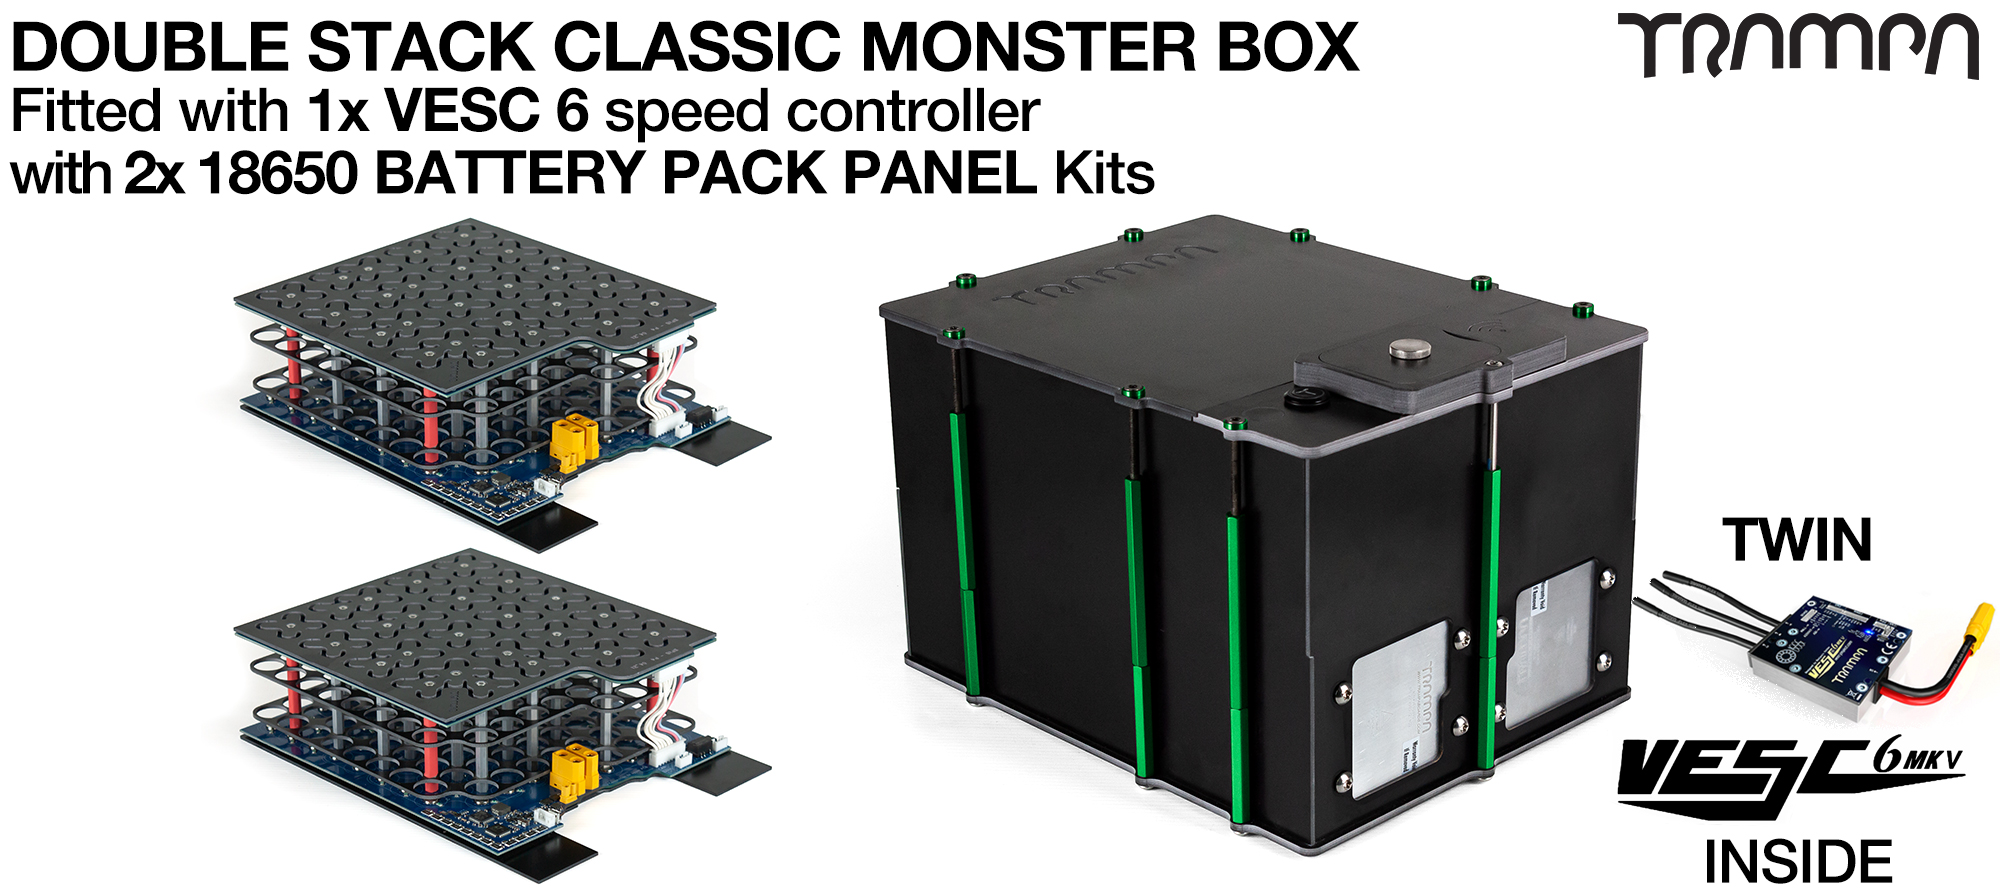 Classic MONSTER Box MkV DOUBLE STACKER - with 18650 PCB Pack & 2x VESC 6 NRF PCB based Battery Pack with Integrated Battery Management System (BMS)  - NO CELLS